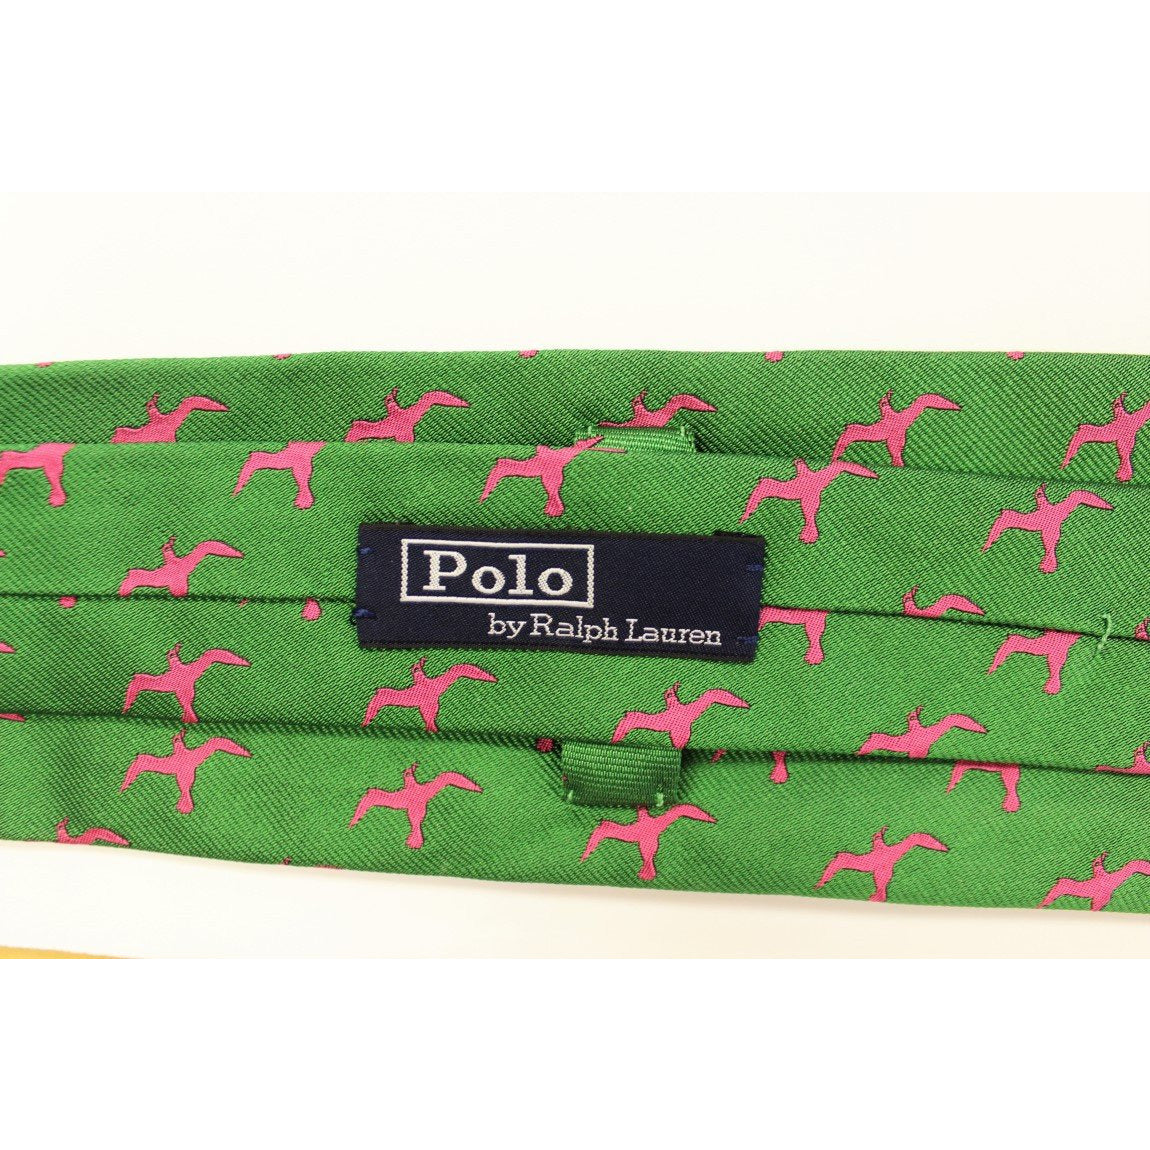 Polo RL Pink 'Seagull' Print on Kelly Green Twill Tie